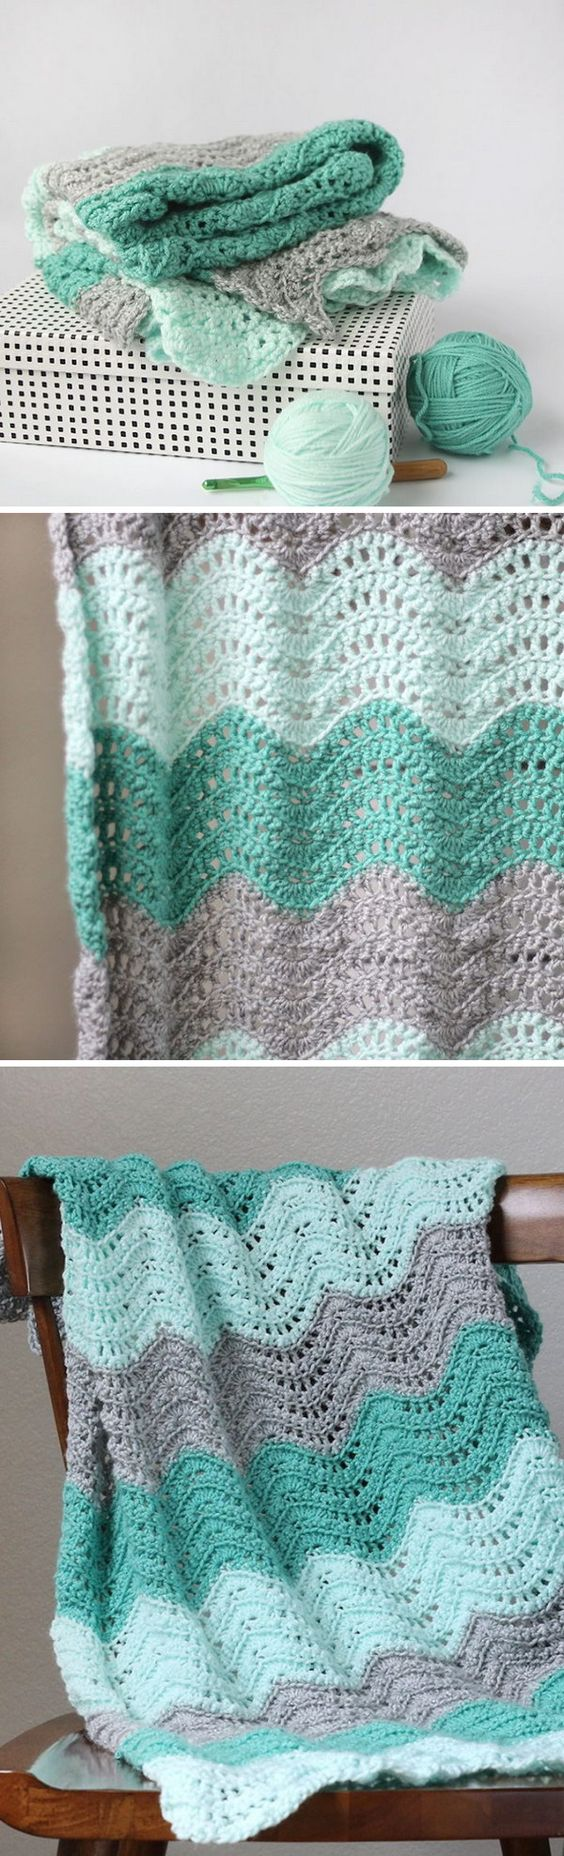 Feather And Fan Crocheted Baby Blanket.: